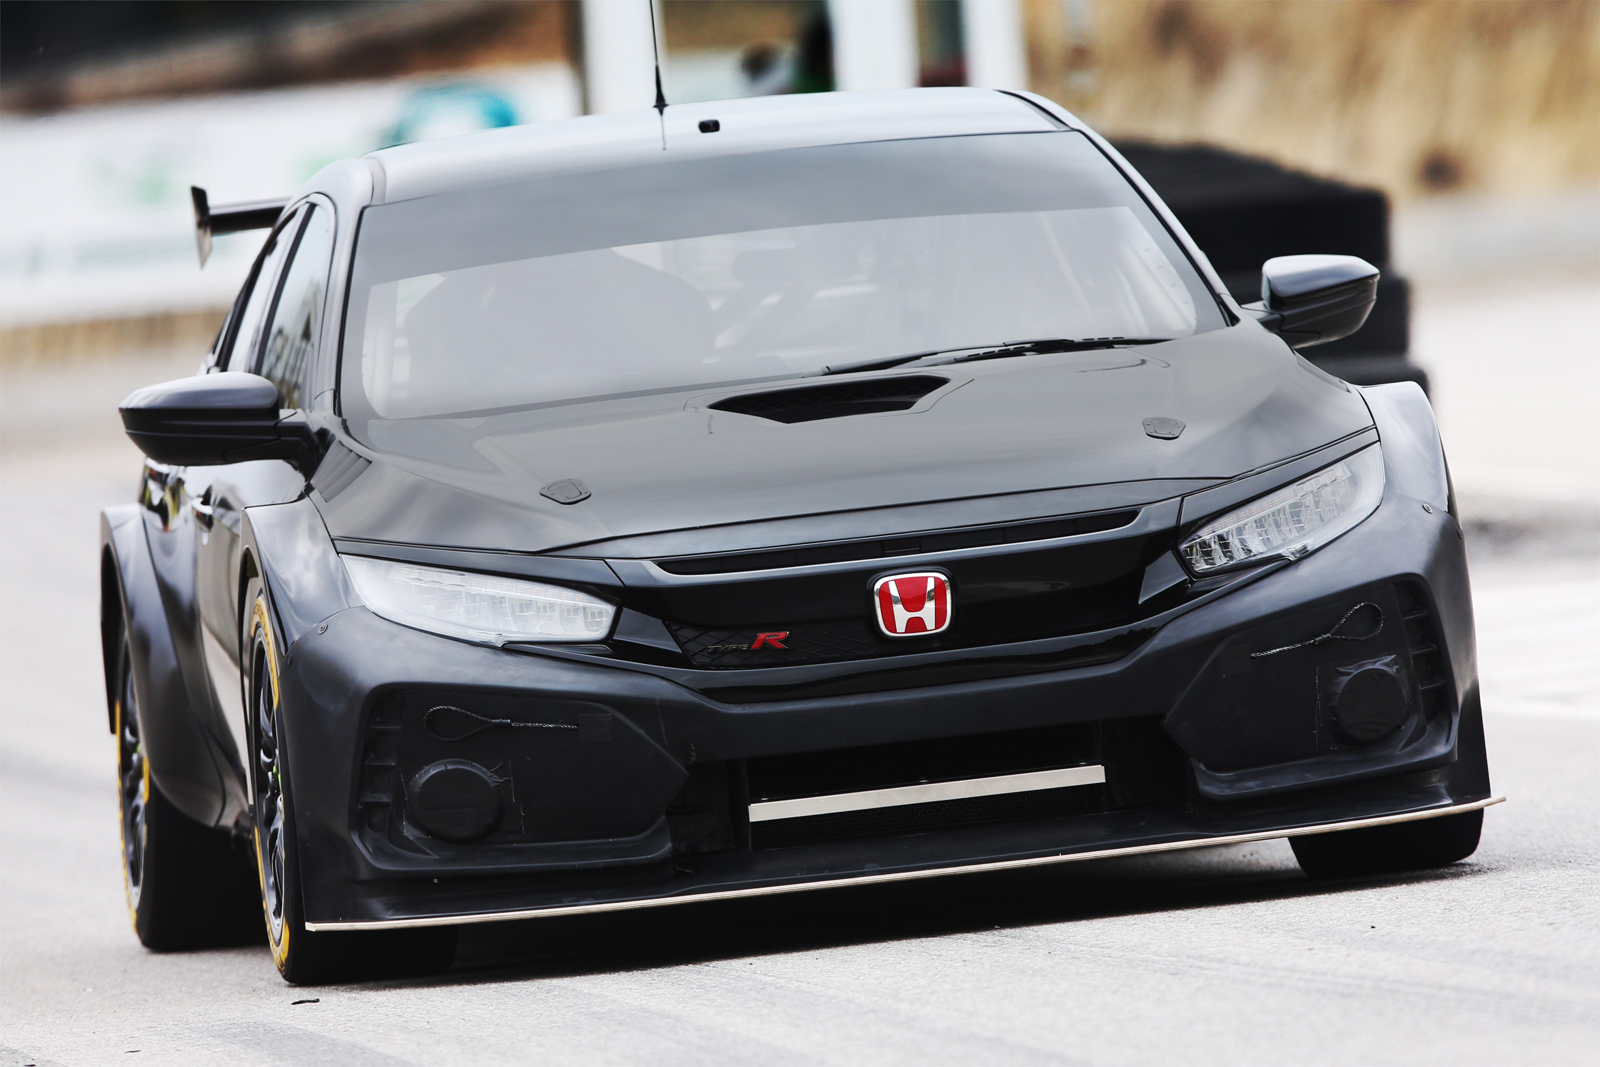 the honda civic type r makes for a mean looking race car news. Black Bedroom Furniture Sets. Home Design Ideas